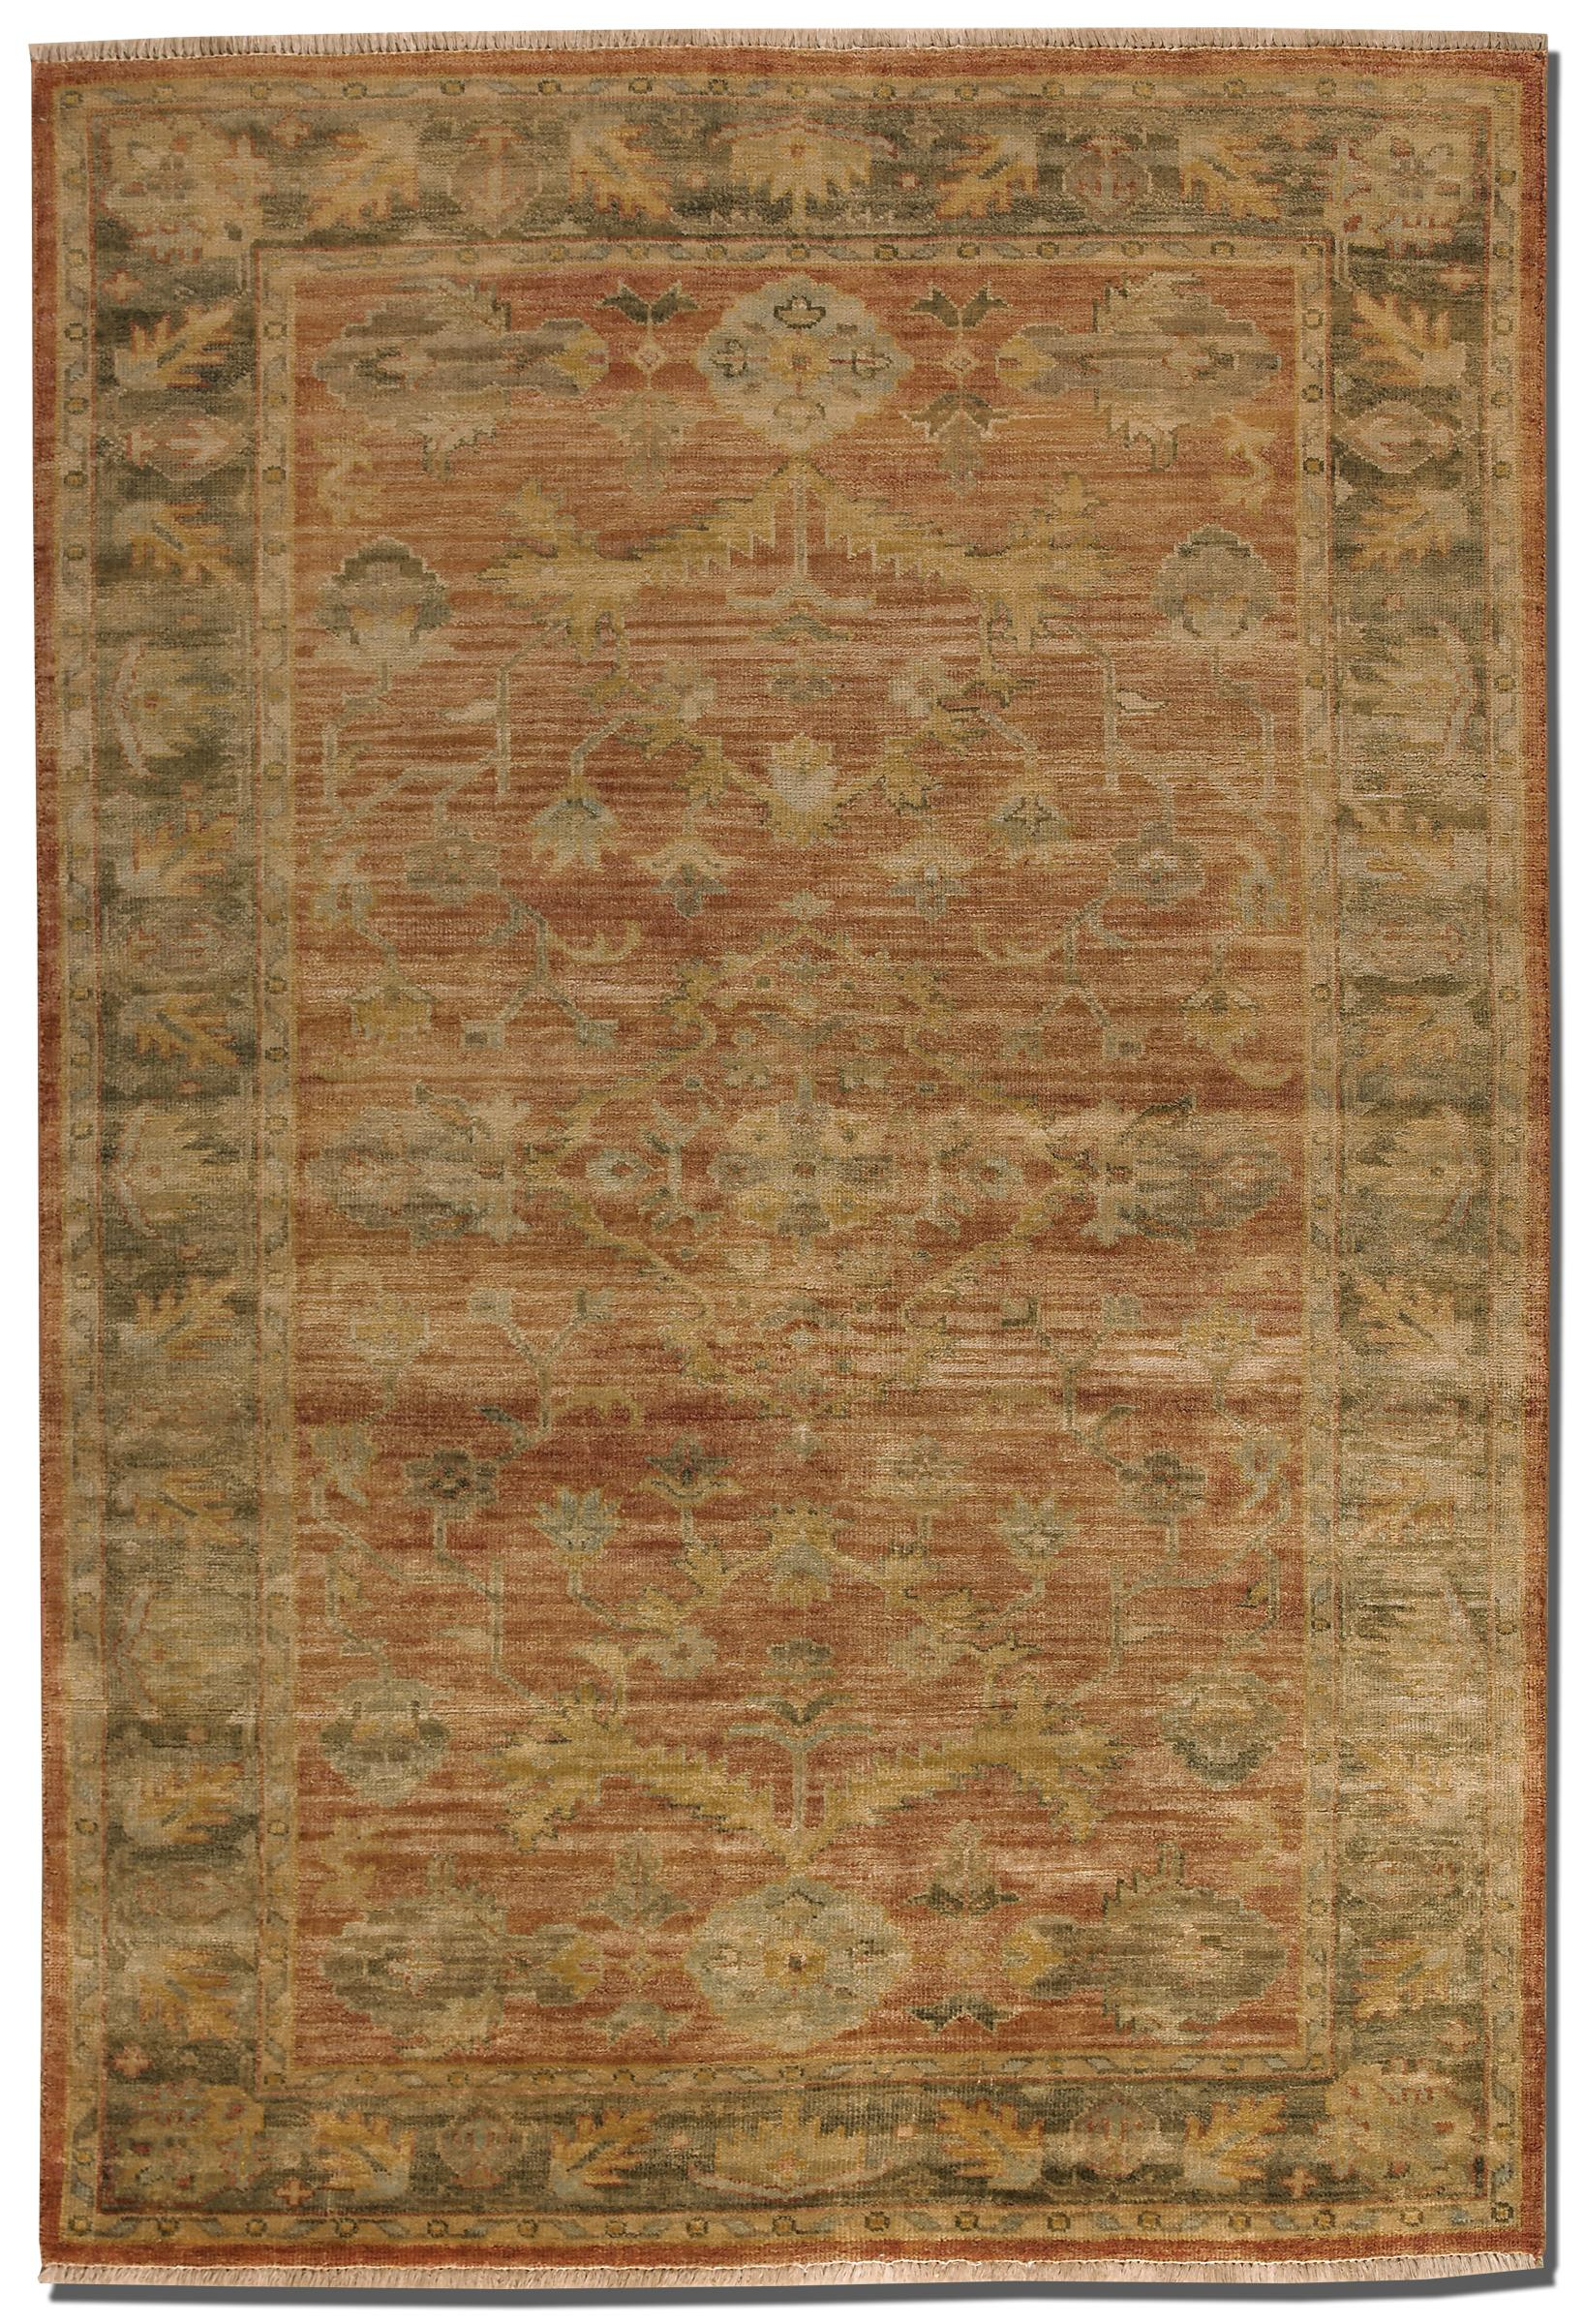 Uttermost Rugs Eleonora 8 X 10 - Item Number: 70009-8